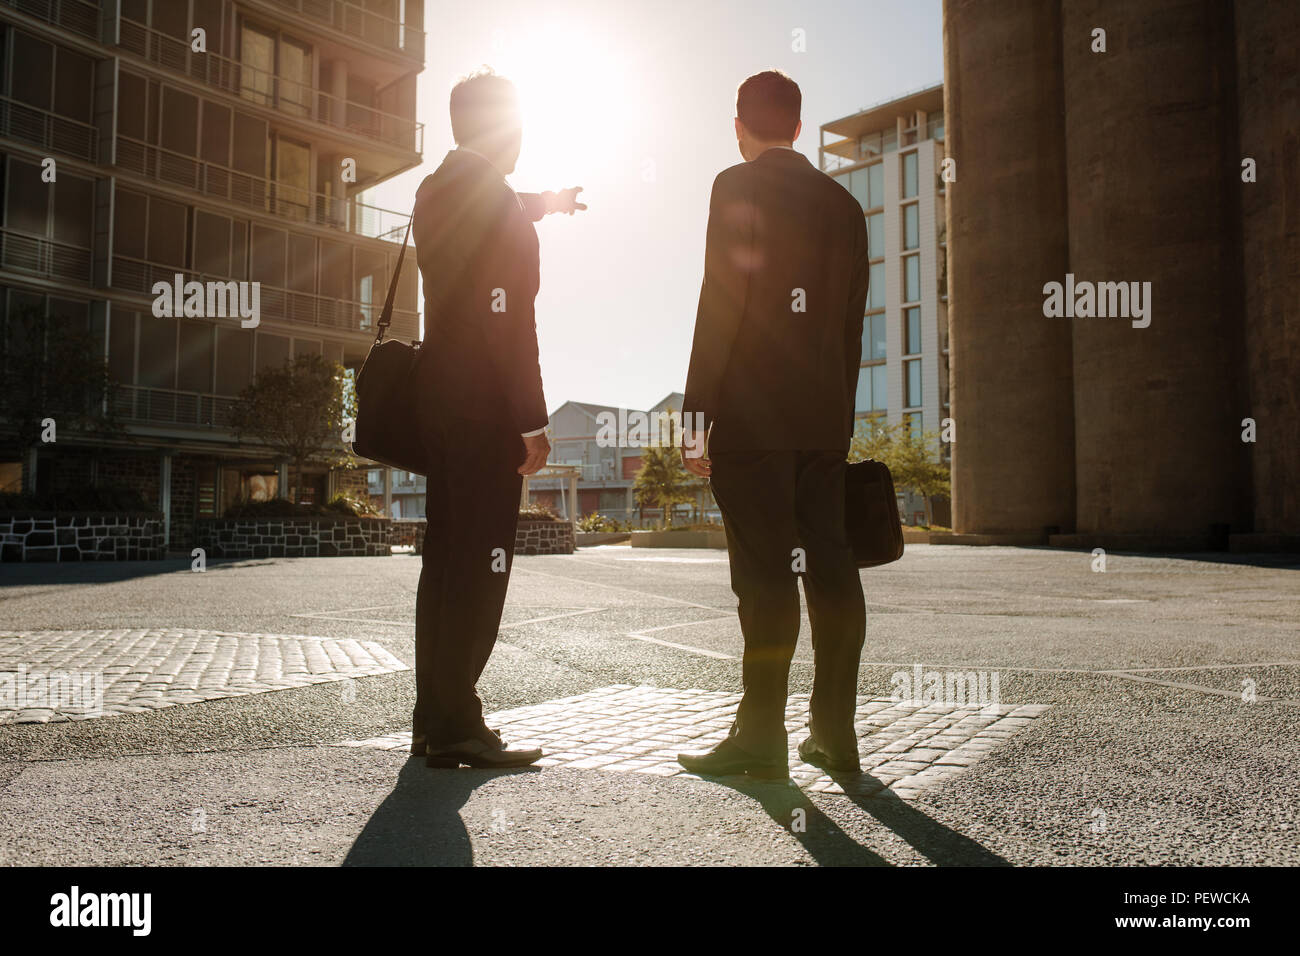 Rear view of business colleagues carrying office bags standing on street looking away with one person pointing towards a distant object. Business peop - Stock Image